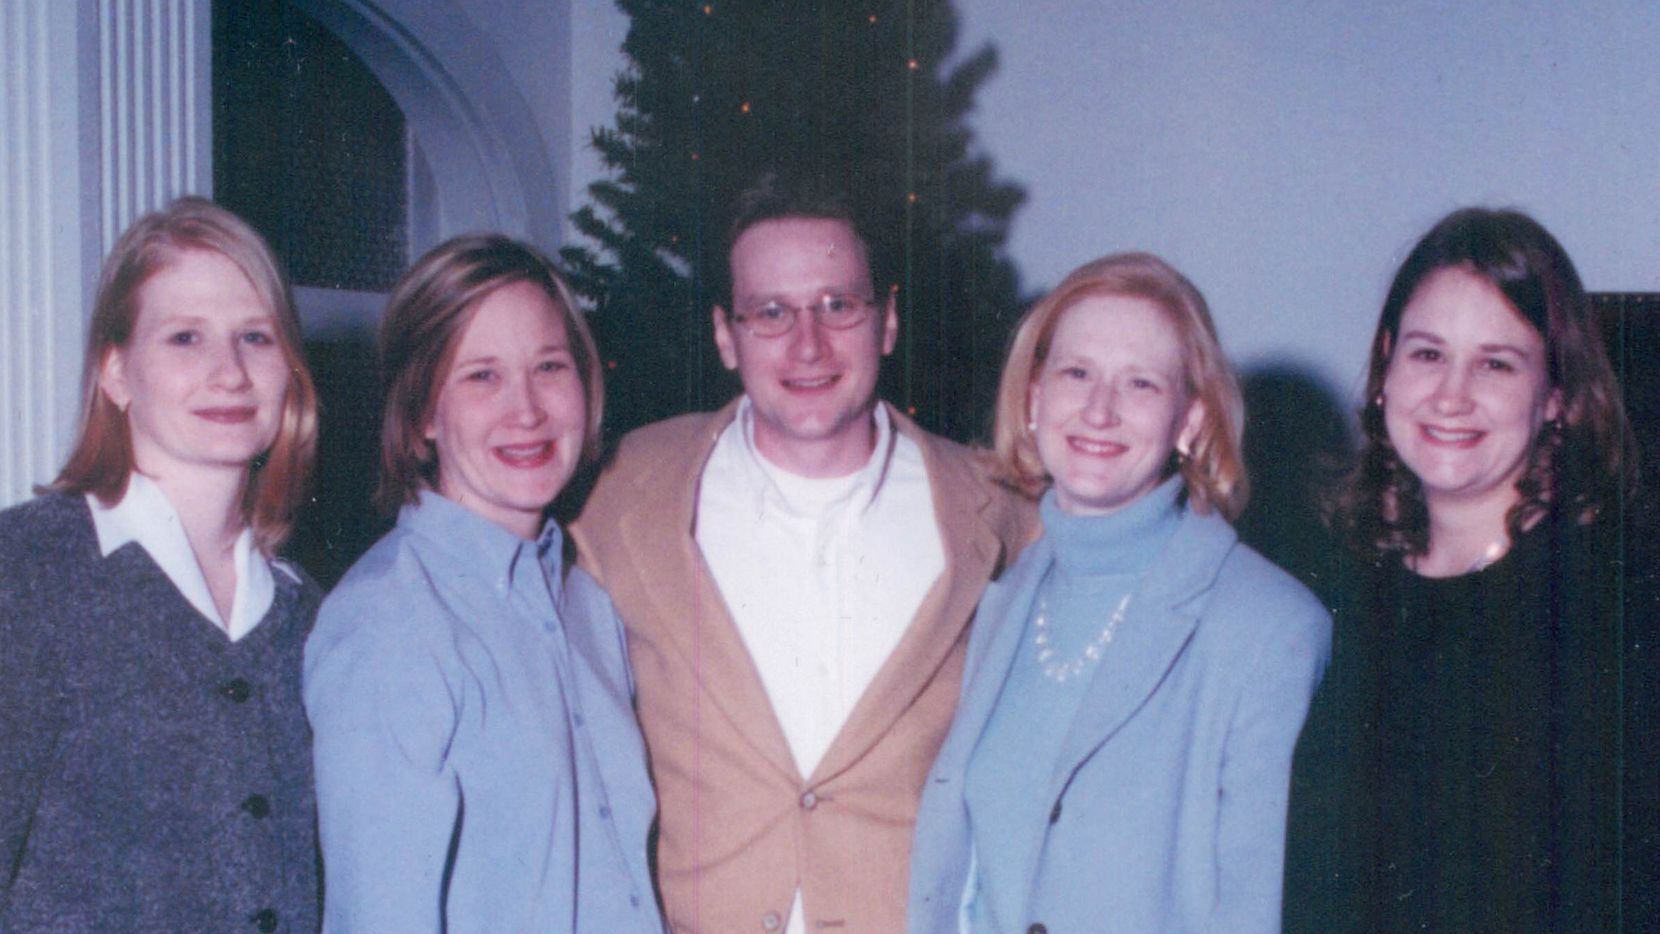 Author Rudolph Bush and his four sisters at their grandmother's 90th birthday party in 2001. From left, Catherine Wetzel, Margaret Kerr, Rudolph Bush, Anna Bush, and Mary Smith.